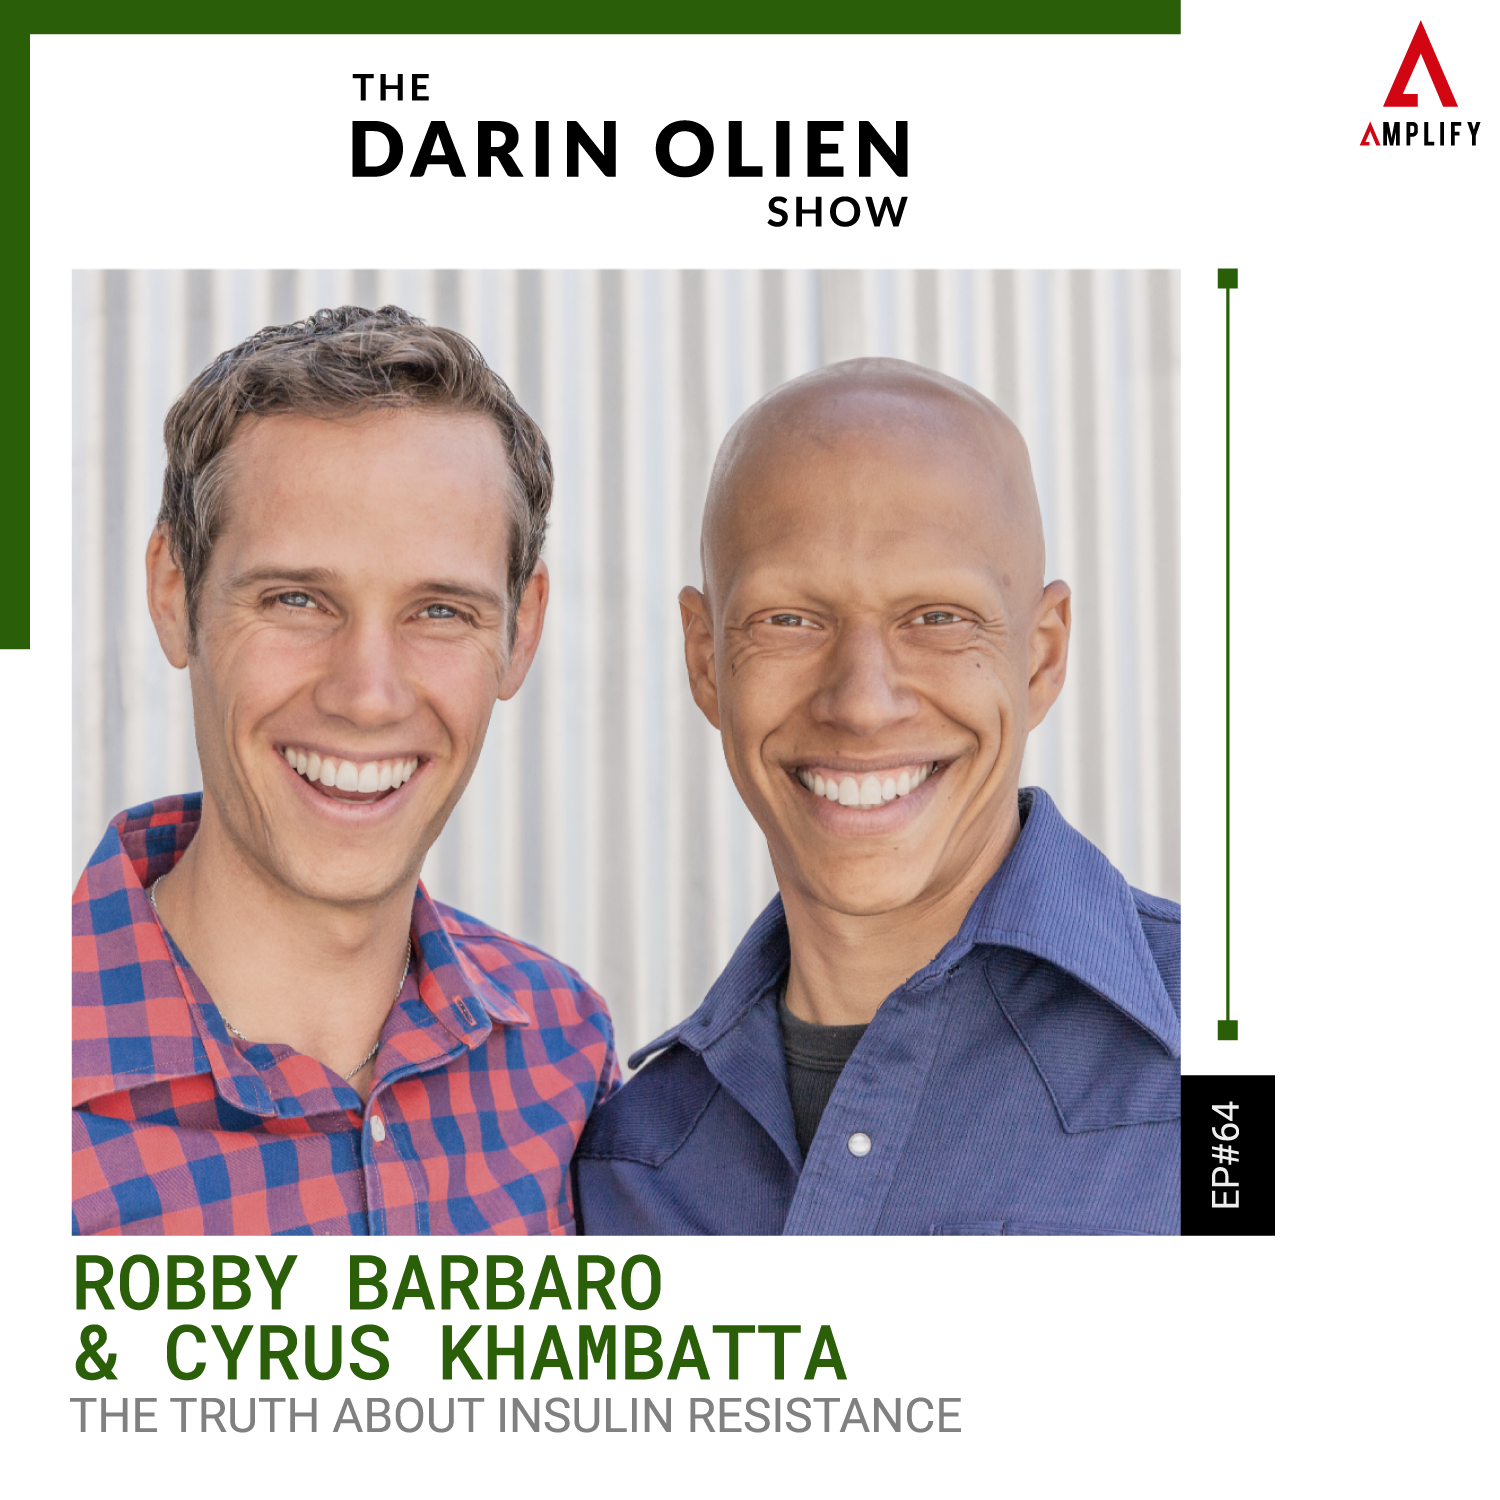 Title: Robby Barbaro & Cyrus Khambatta on The Truth About Insulin Resistance